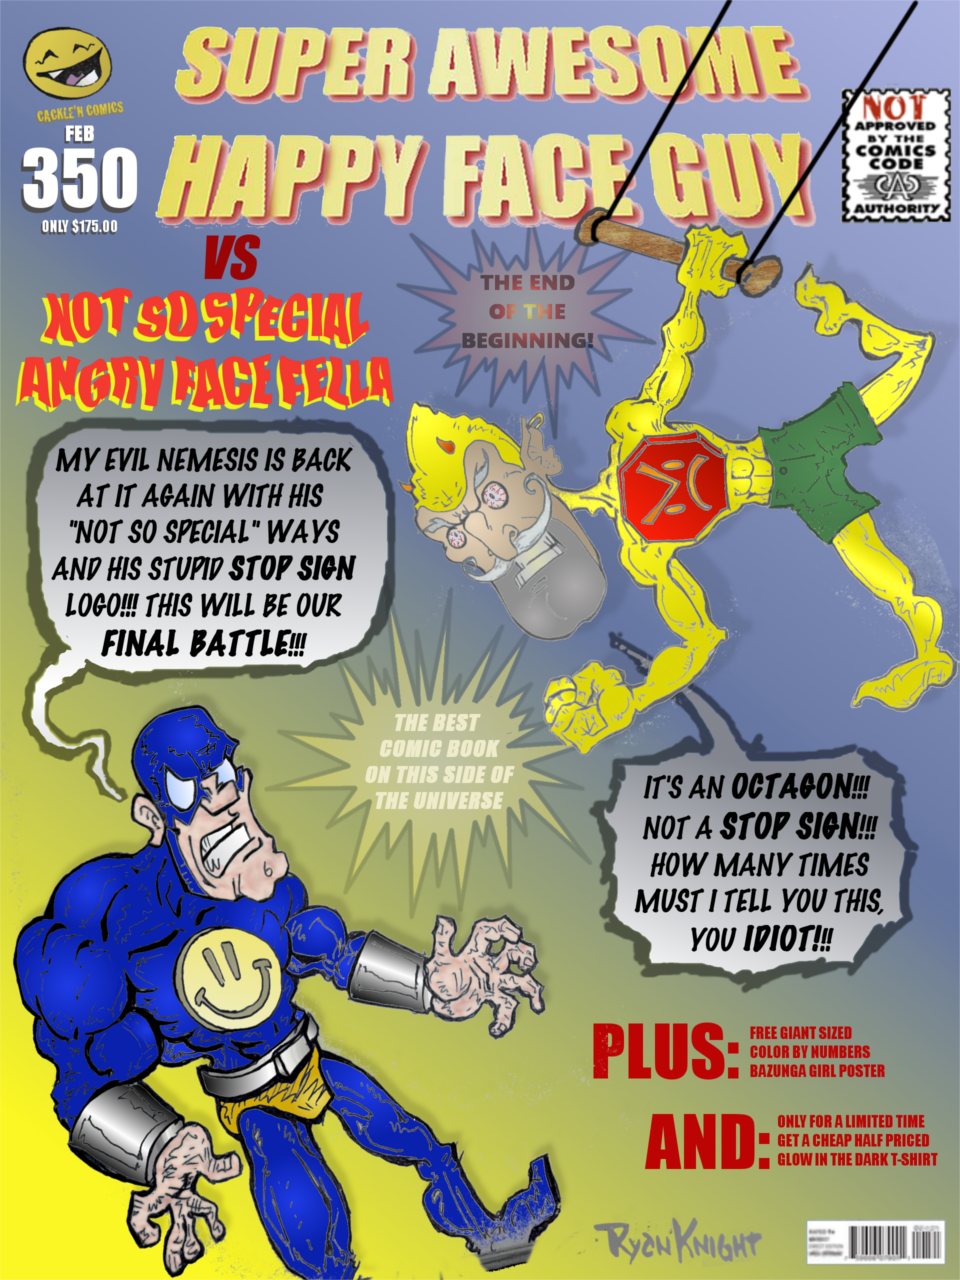 SAHF Guy 350 - VS Not So Special Angry Face Fella: The End of the Beginning